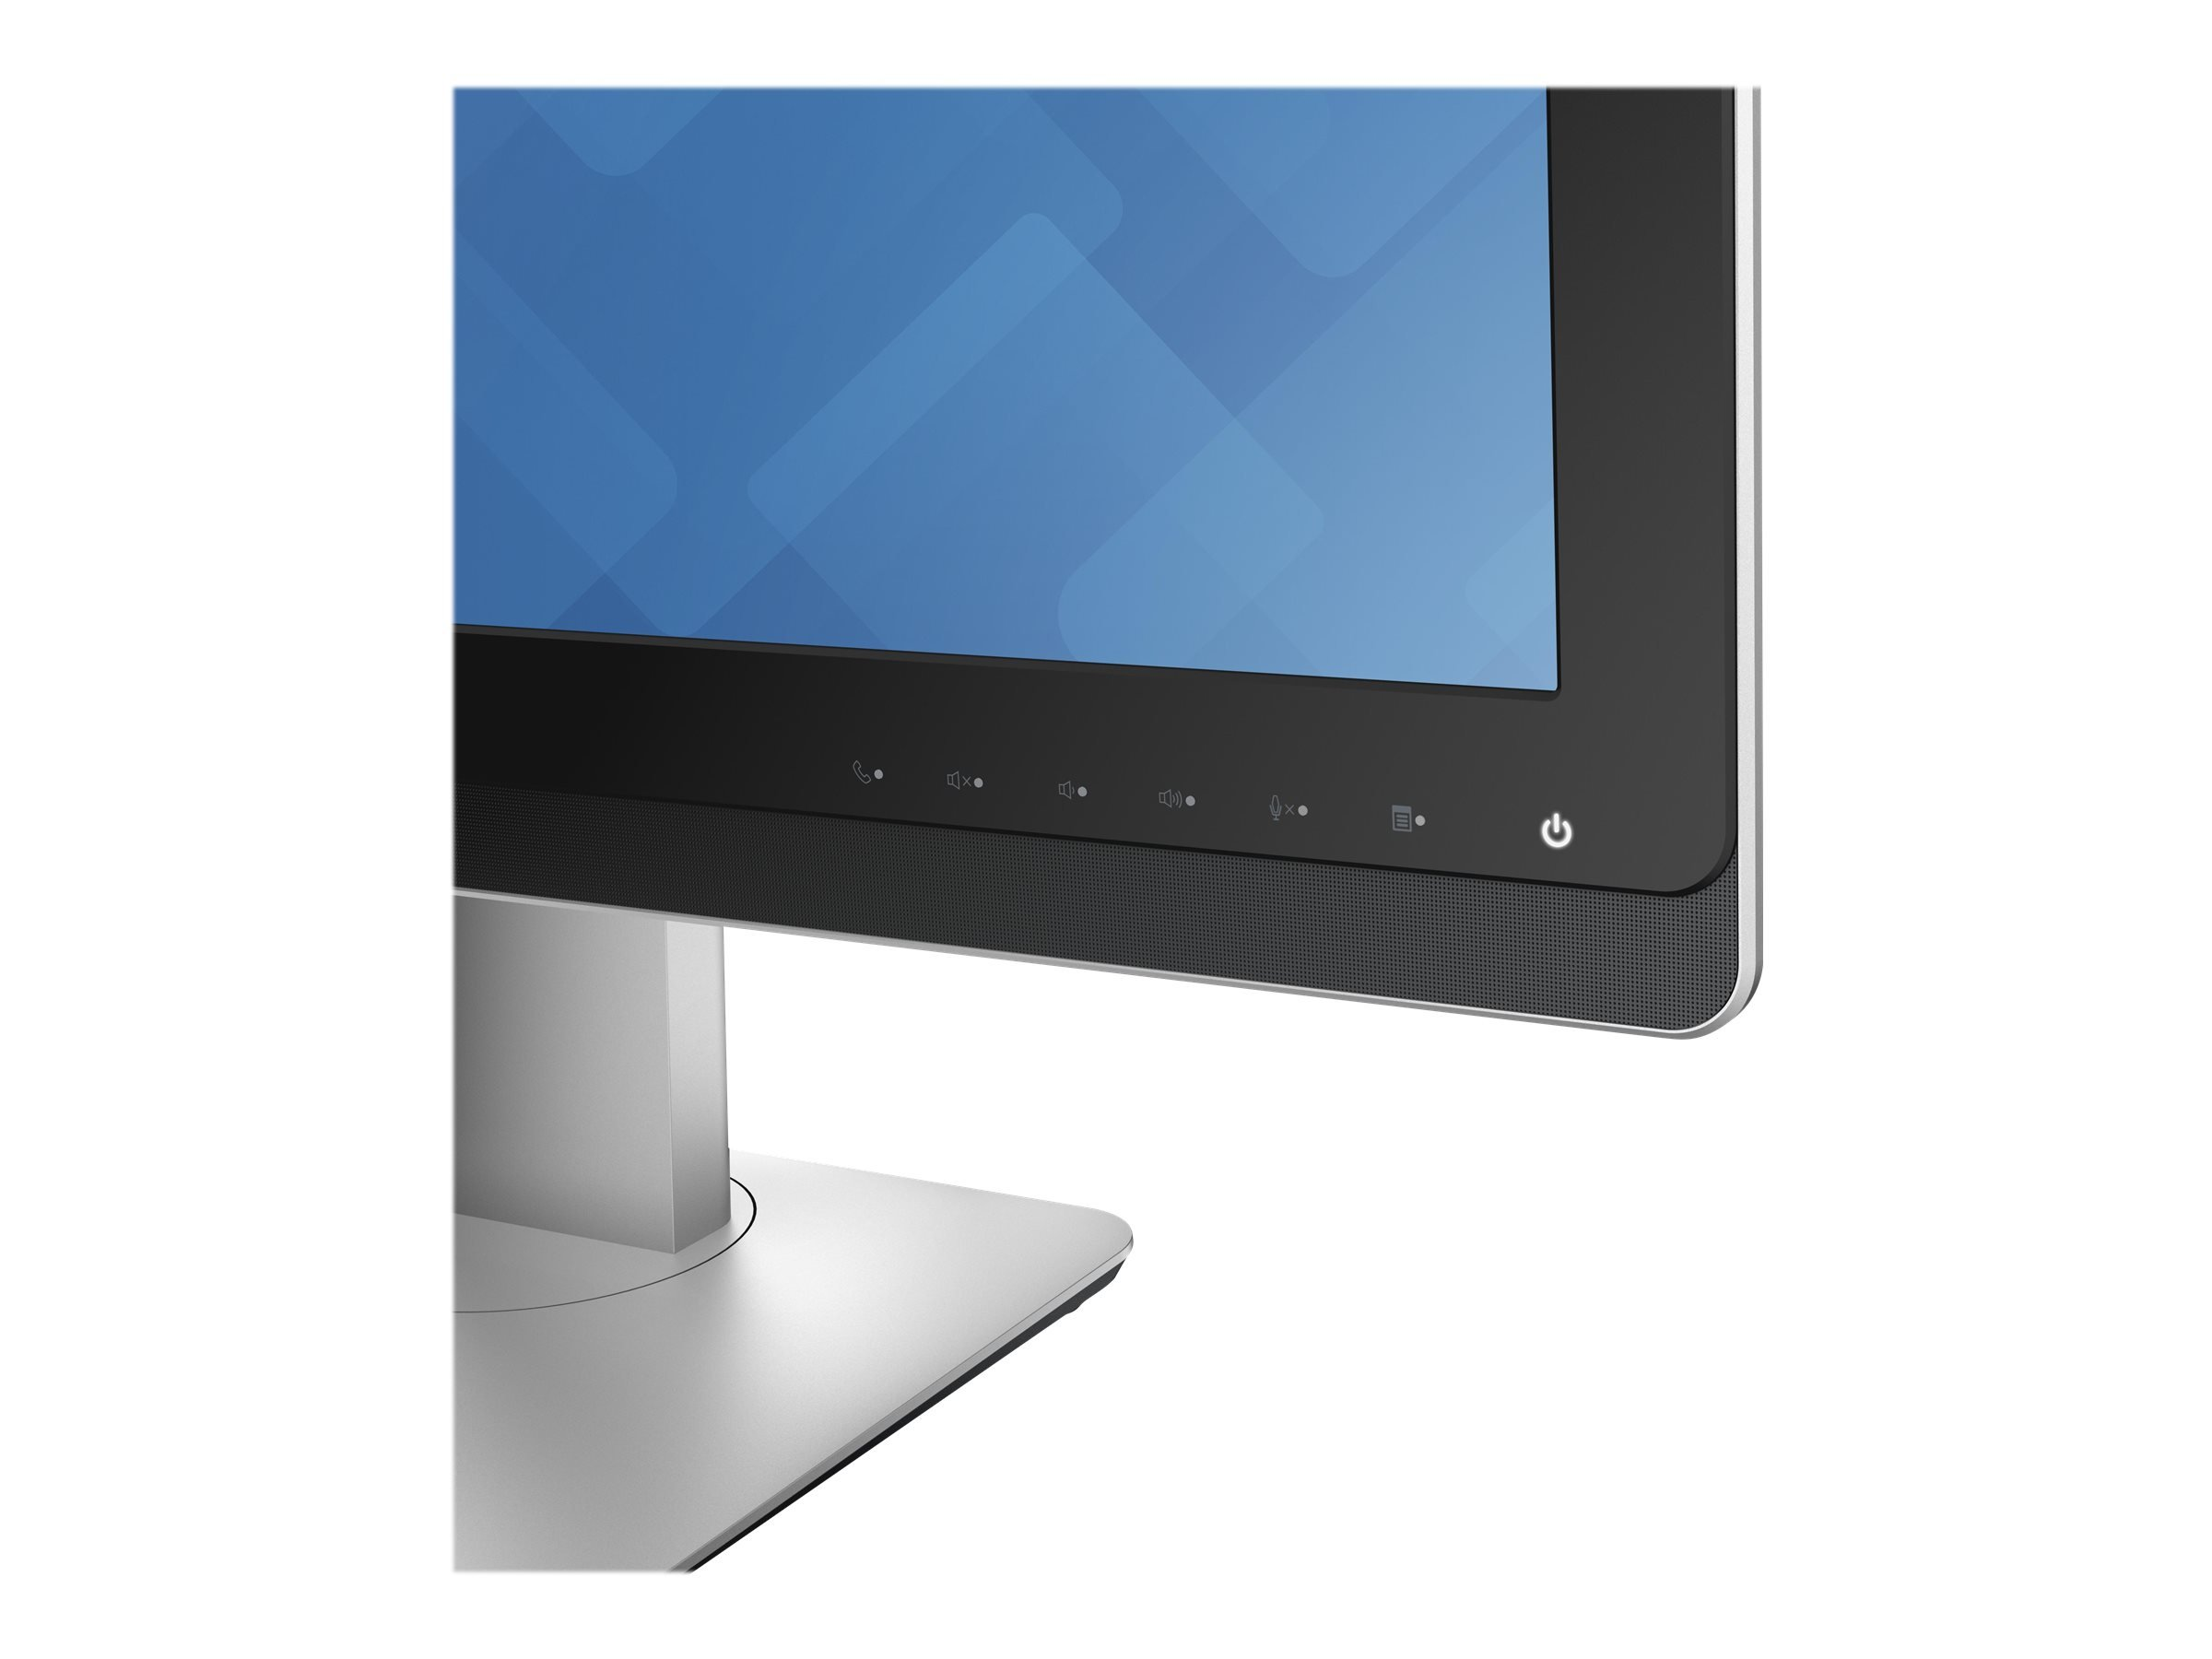 Dell Ultrasharp UZ2315H 23-Inch Screen LED-Lit Full HD Monitor with Webcam and Speakers by Dell (Image #13)